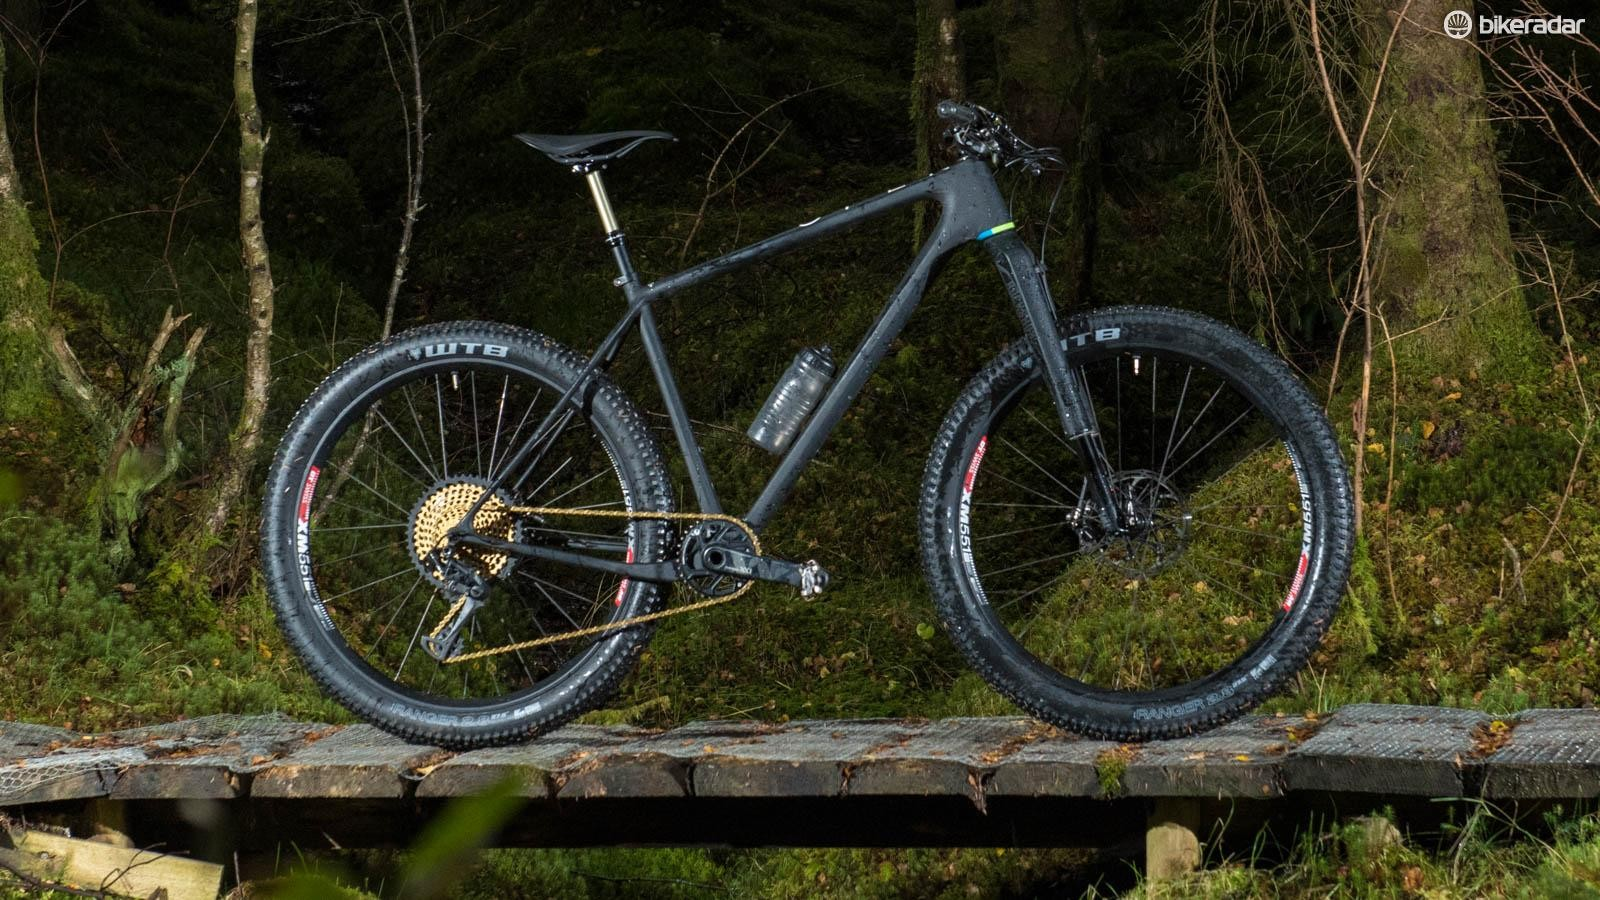 Open's stunning sub-1kg One+ frame deserves a suitably golden build up from SRAM, RockShox, DT Swiss, USE, KS, Fabric and WTB